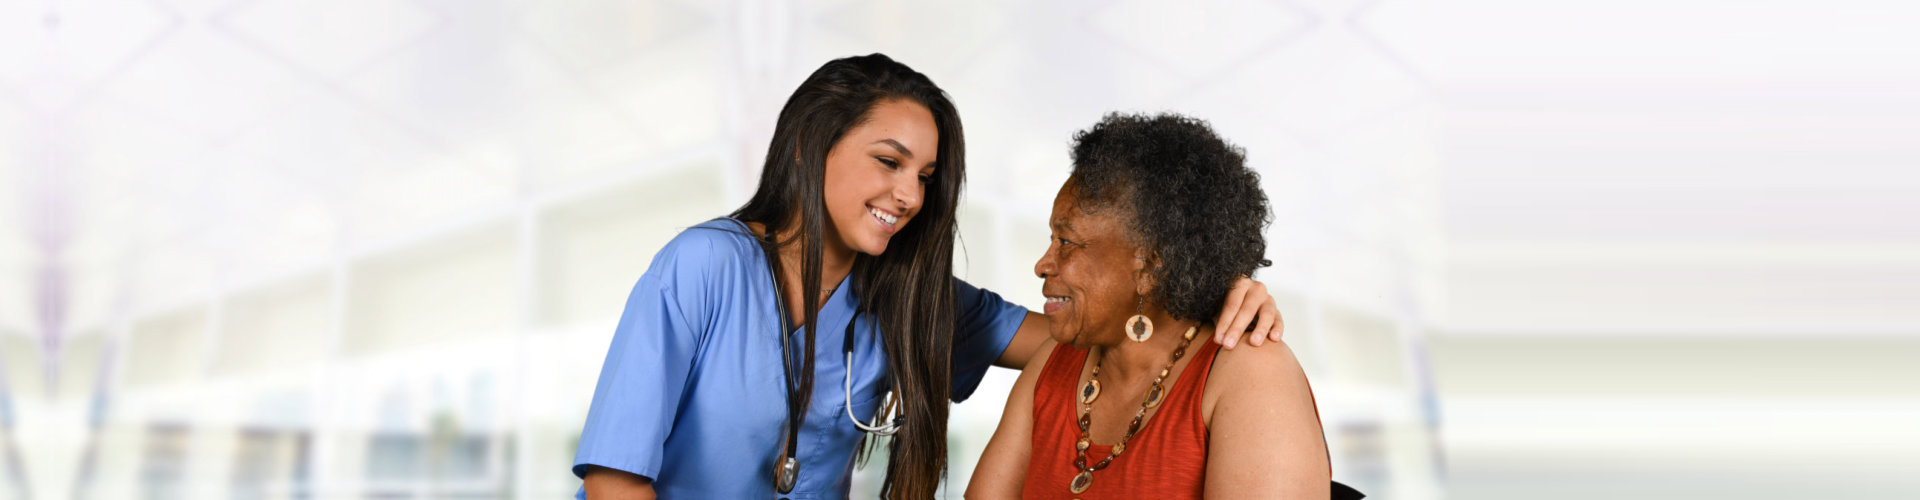 adult woman and caregiver looking at each other